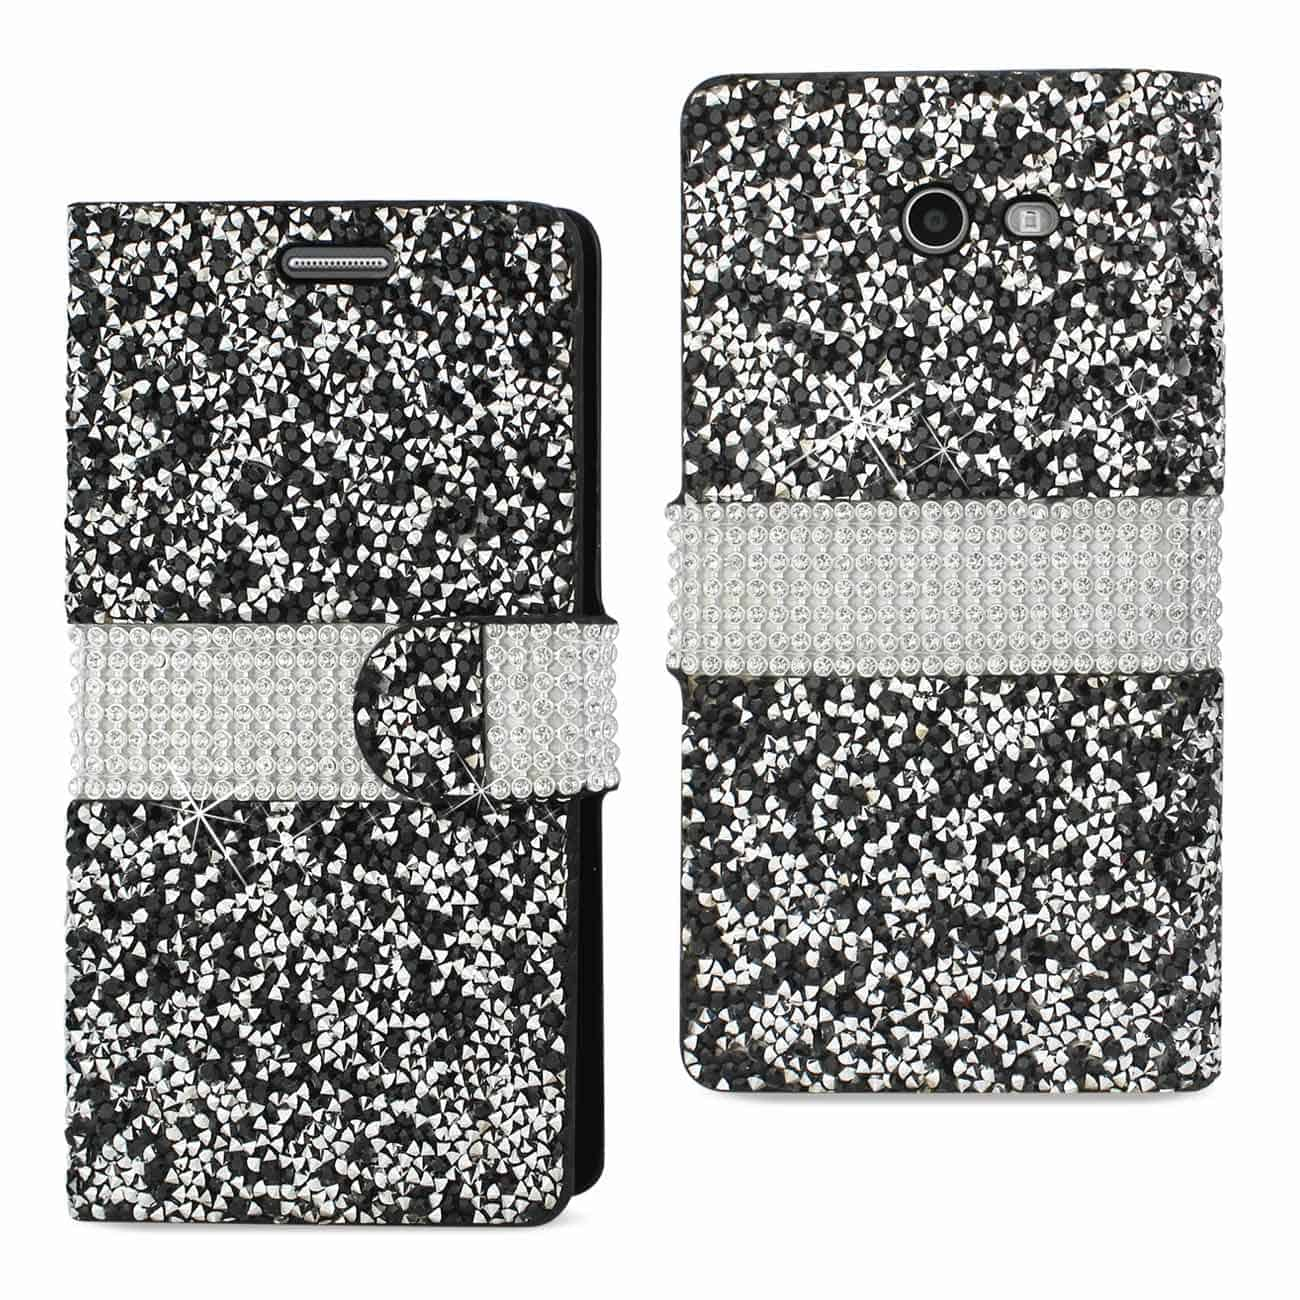 SAMSUNG GALAXY J3 EMERGE DIAMOND RHINESTONE WALLET CASE IN BLACK